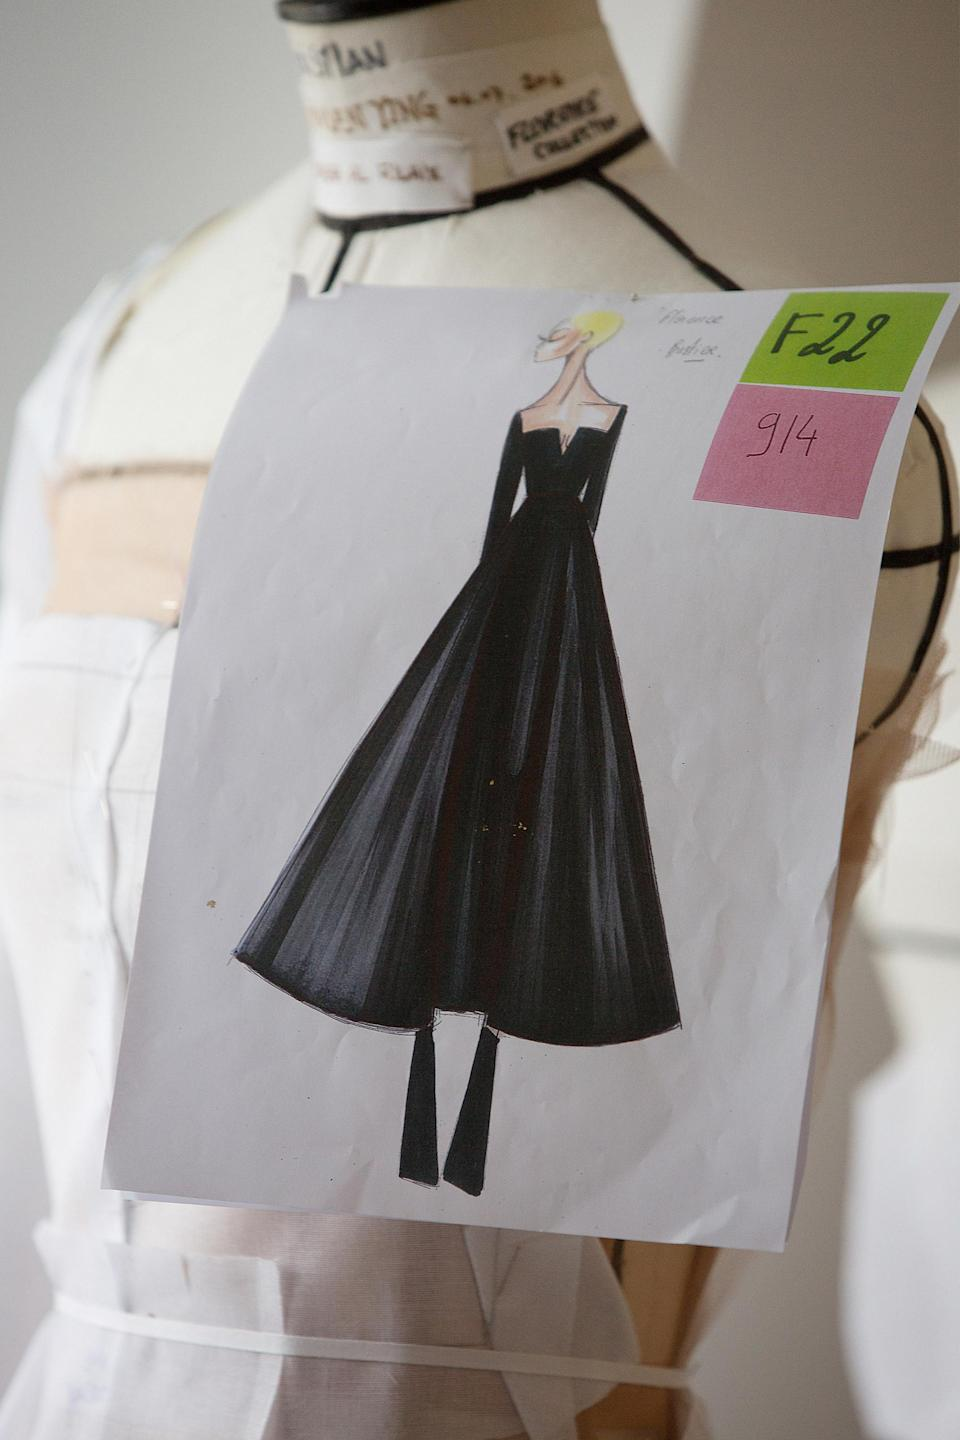 <p>The final sketch of the gown shows the full skirt and square neckline of the dress in detail.</p>